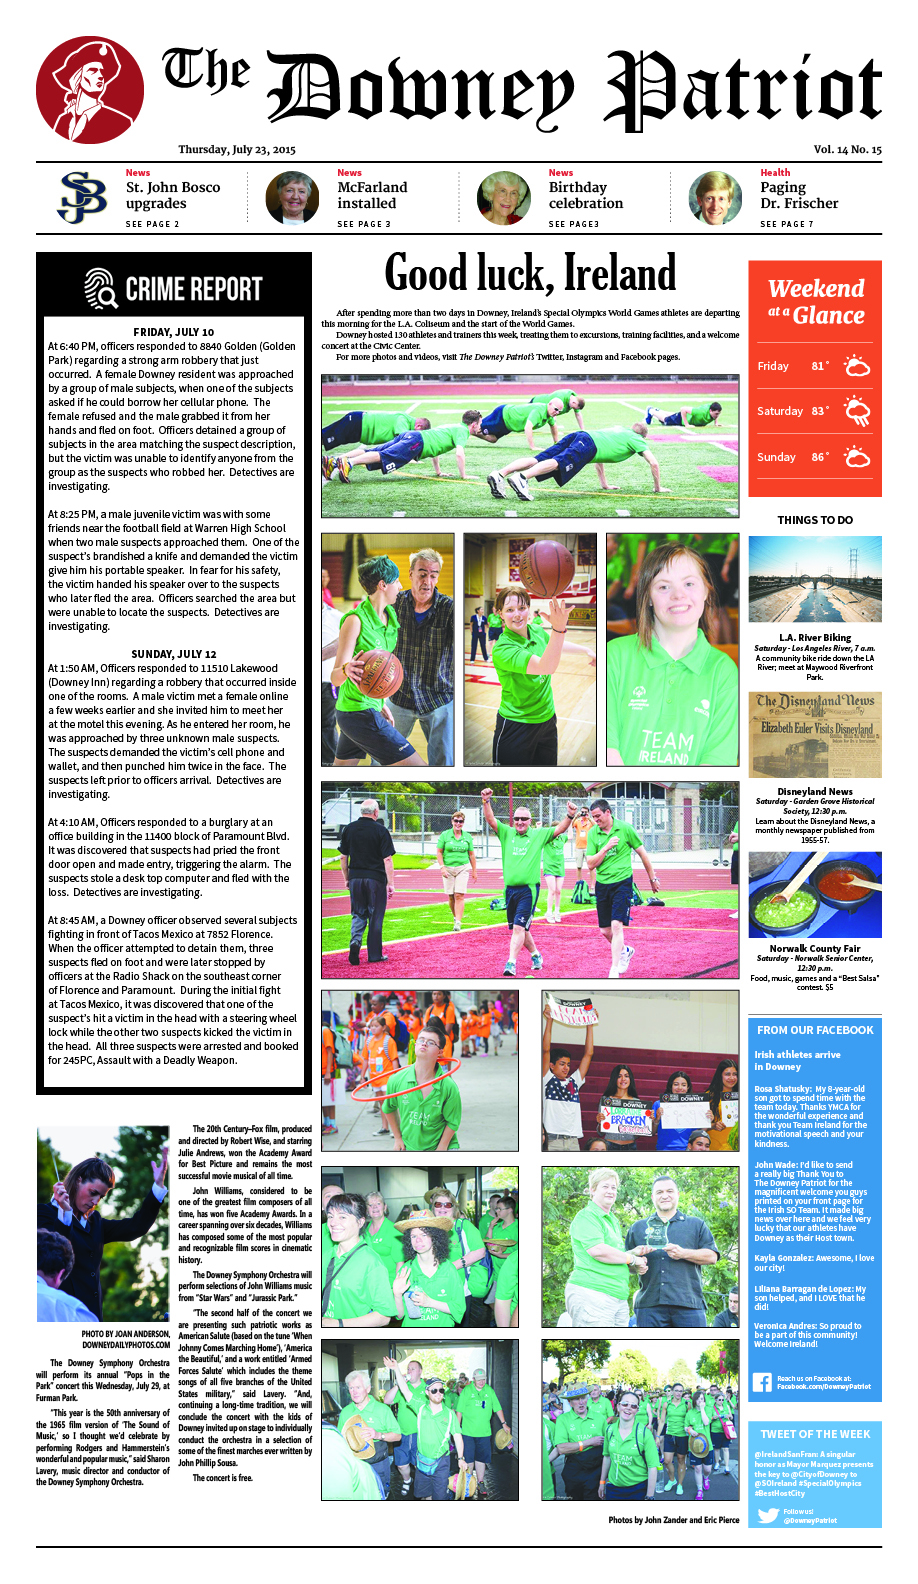 VOL 14, NO 15, JULY 23, 2015